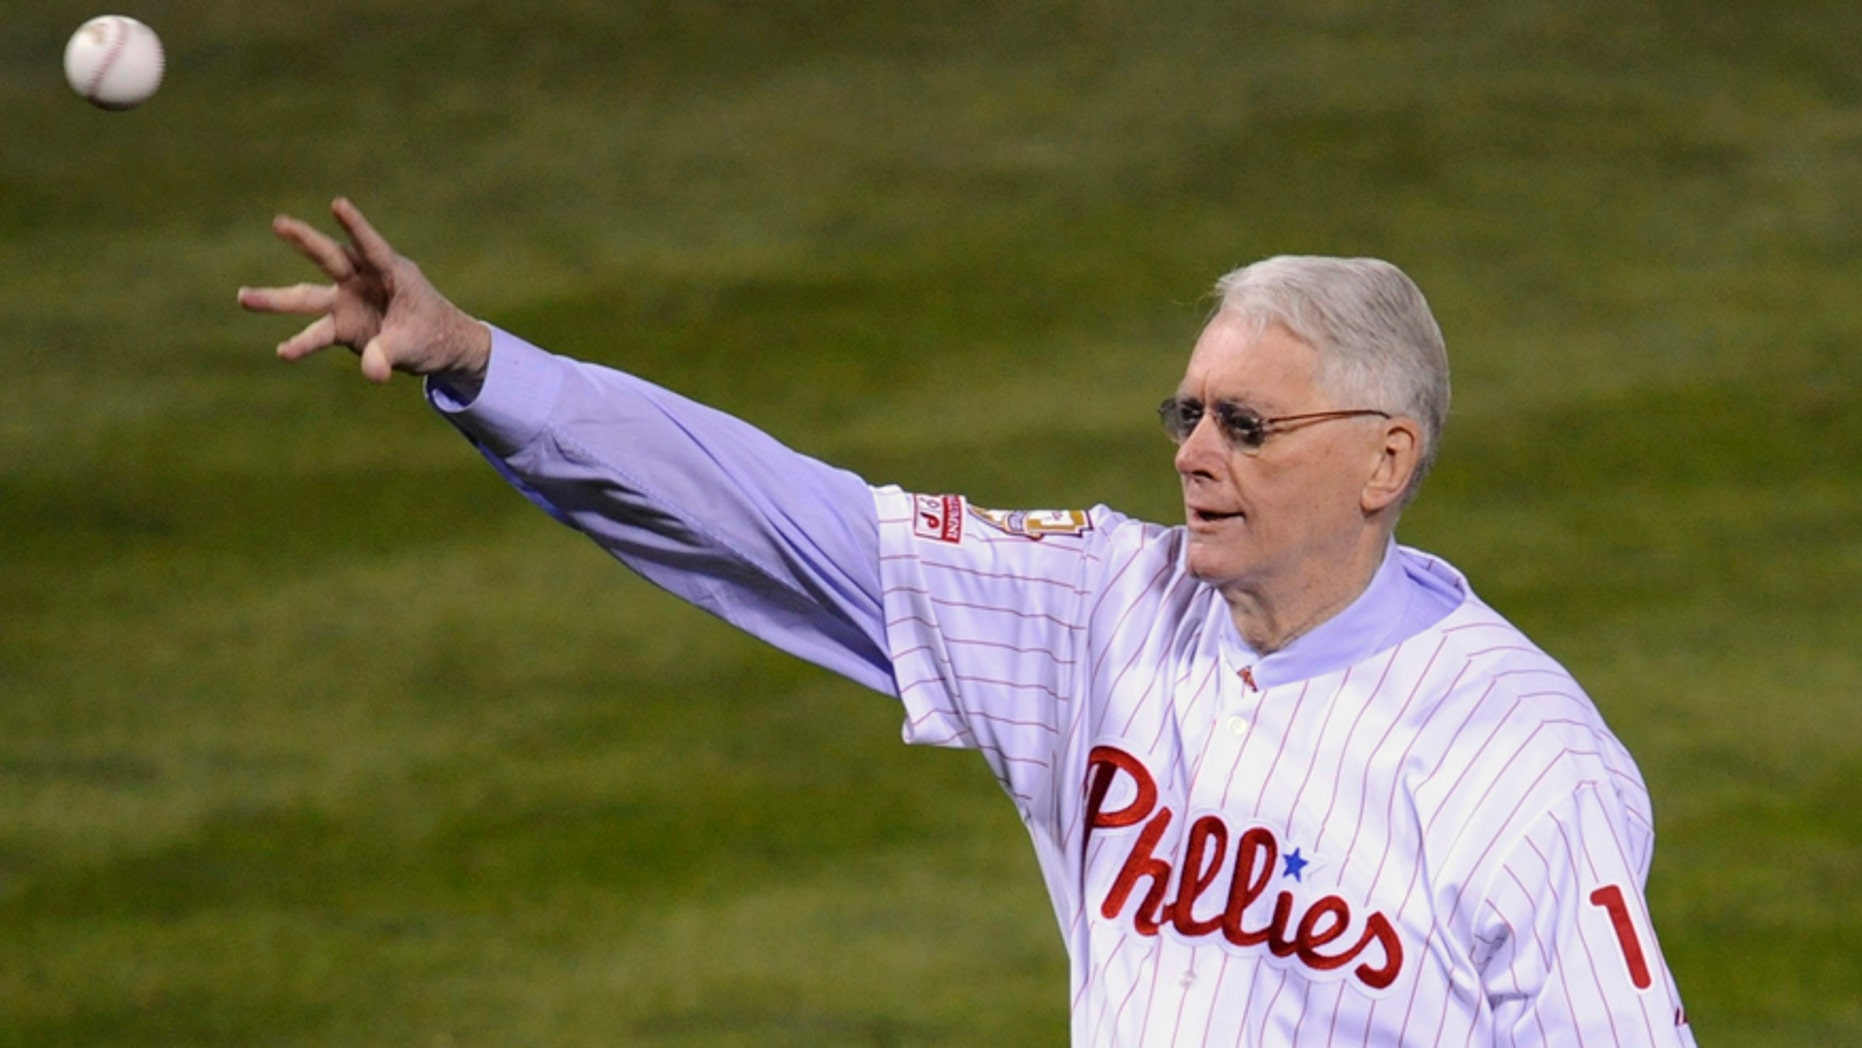 Former Philadelphia Phillies pitcher Jim Bunning throws out the ceremonial first pitch before Game 5 of Major League Baseball's World Series in Philadelphia, October 27, 2008.